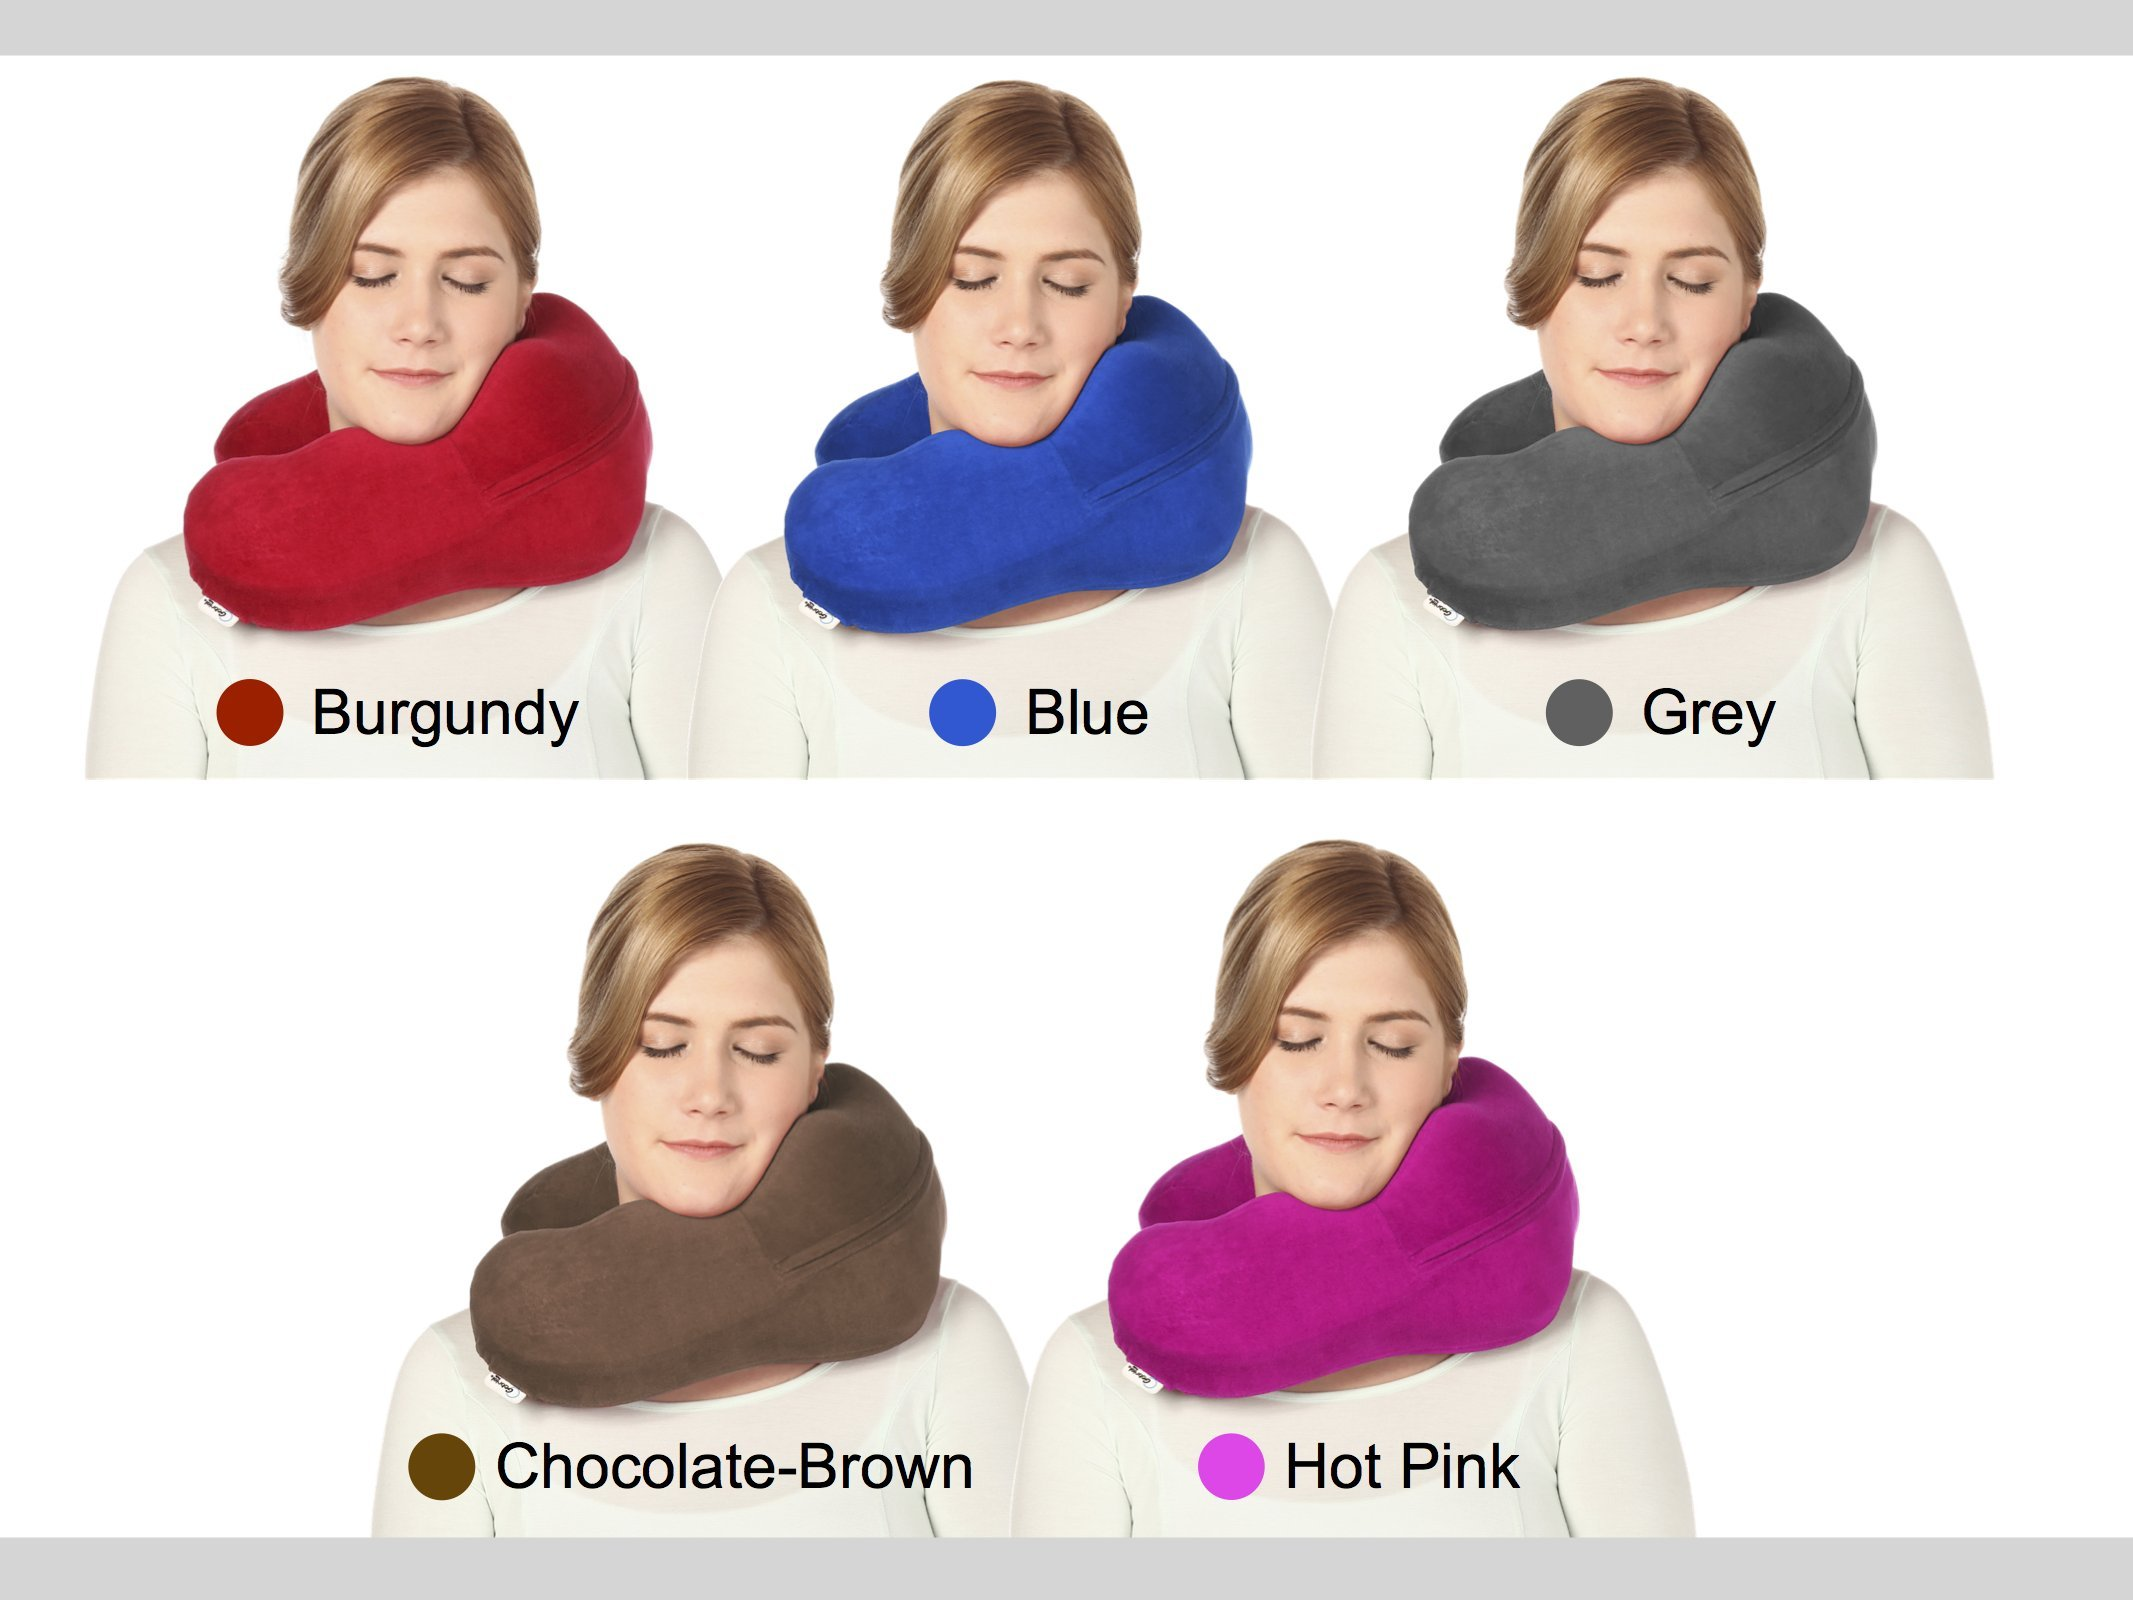 Best Supportive Chiropractor Recommended Neck Pillow - Pain Relief - The Ultimate Support Pillow - Burgundy Neck Sofa